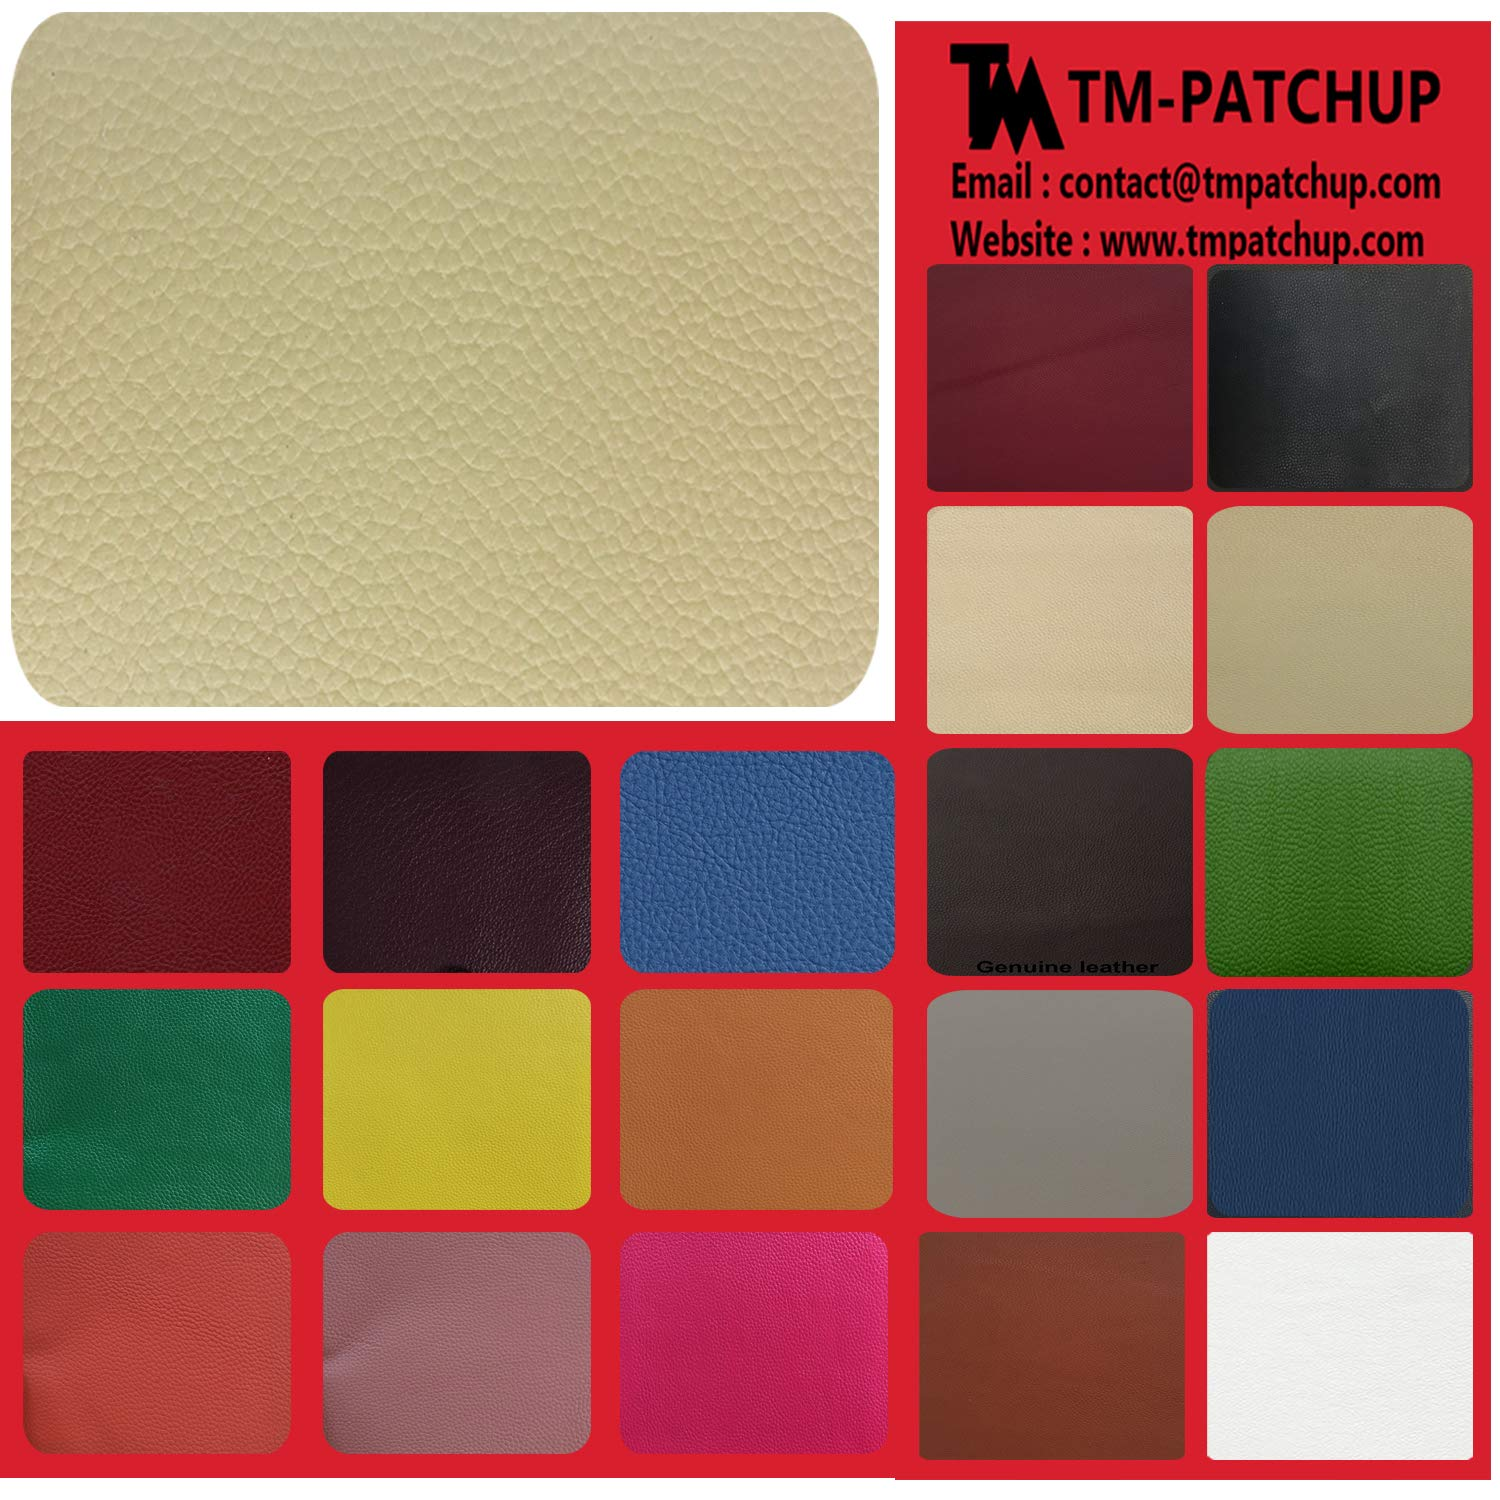 Genuine Leather Repair Patch kit TMgroup Tan Coffee, Quantity : 1 Leather Patches for Furniture Peel and Stick for Couch car Seats Sofas Hand Bags,Furniture Size 6-inch x 3-inch